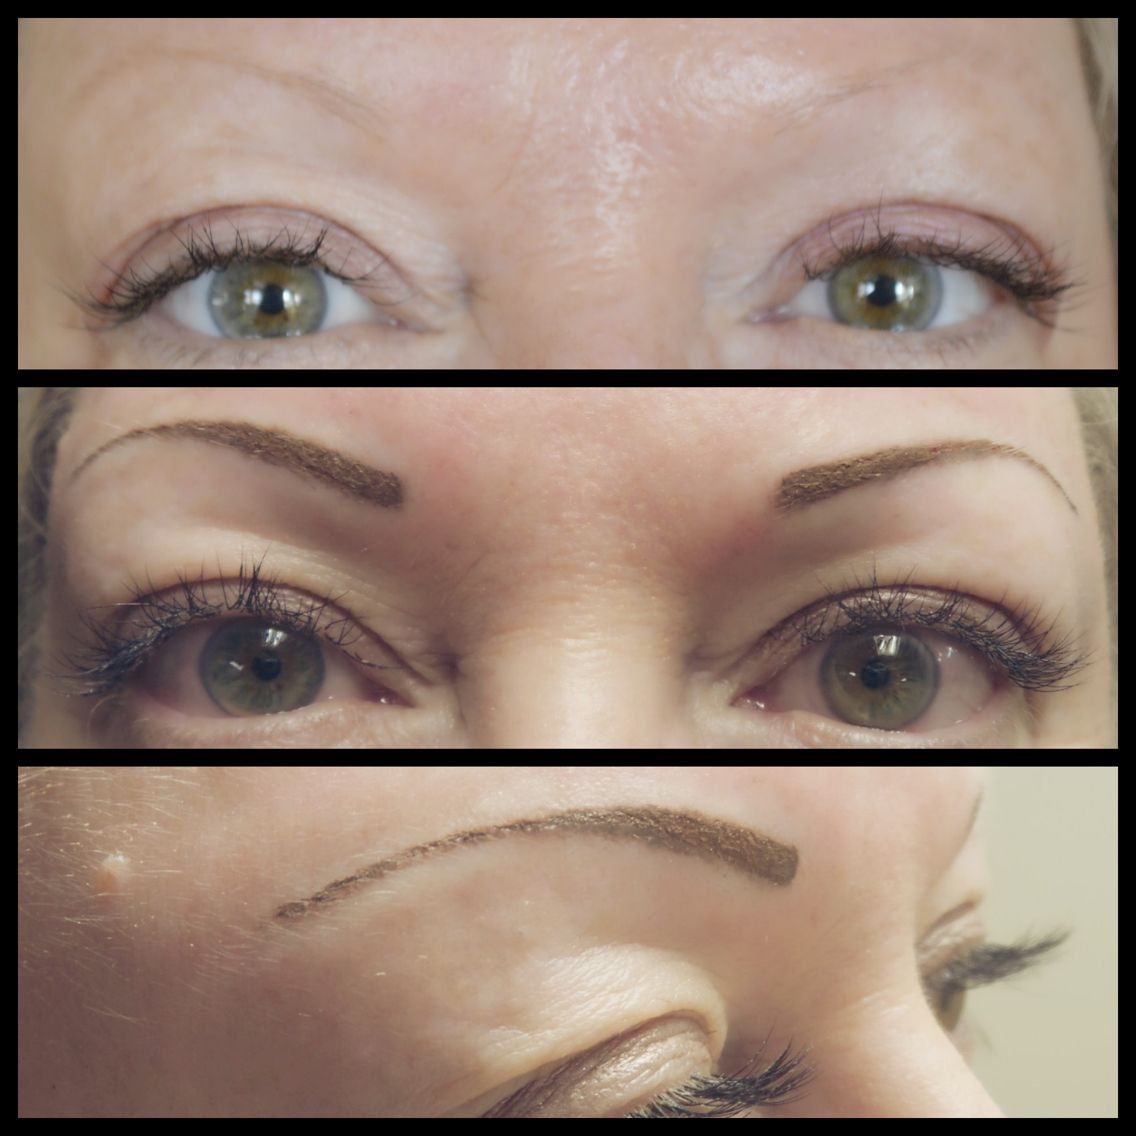 Cosmetic Tattoo Eyebrows Before And After Touch Up For This Blonde